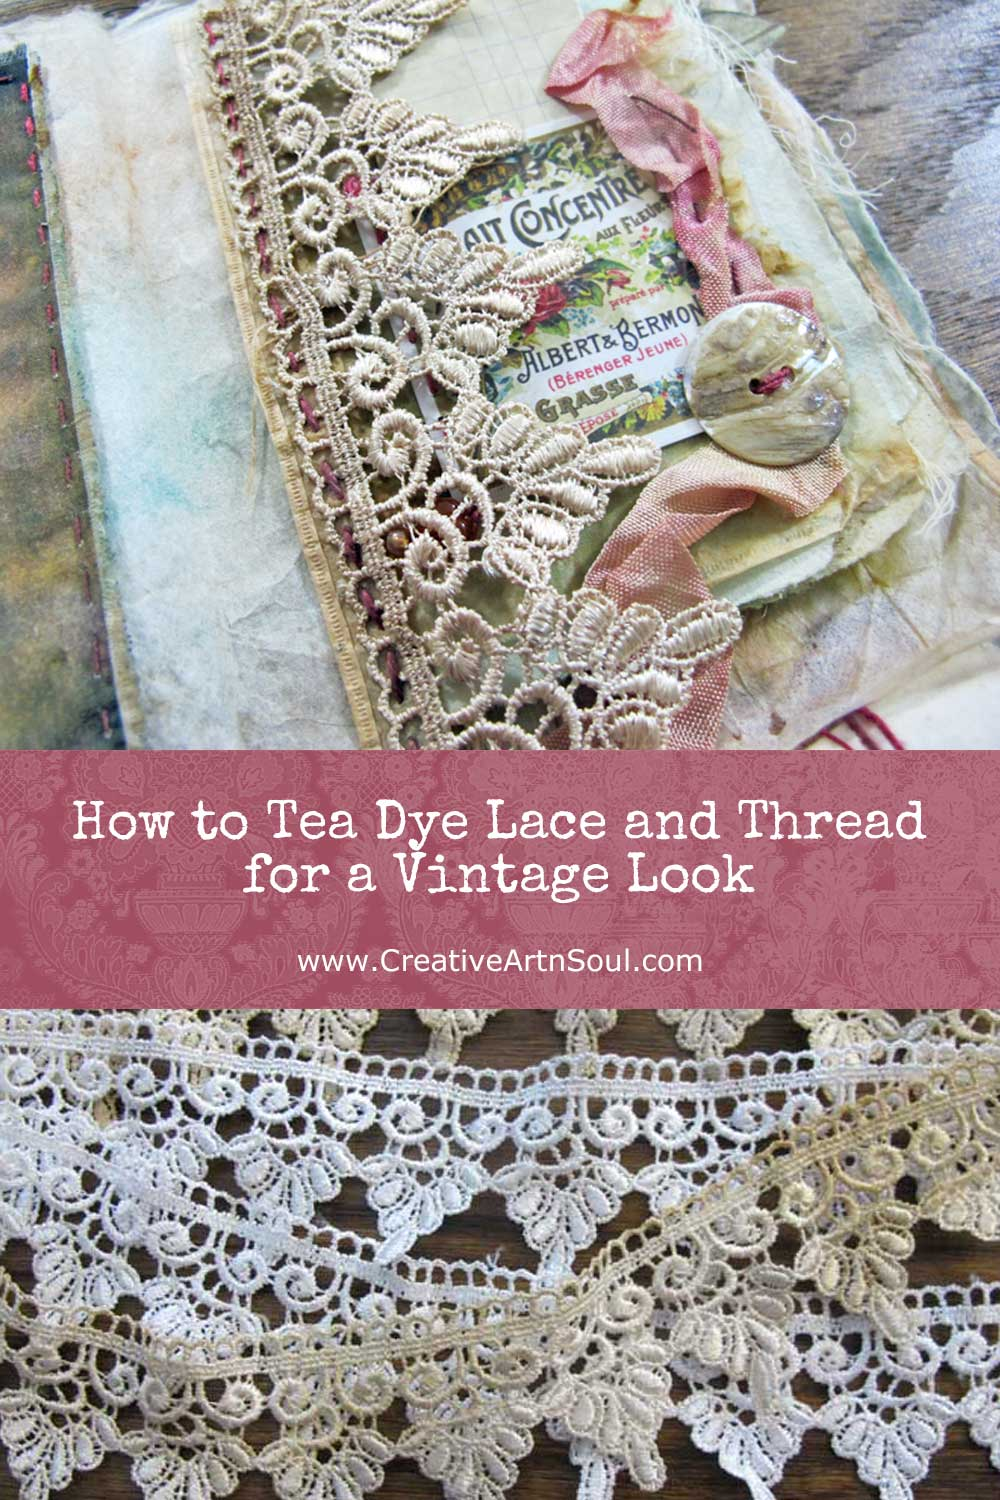 How to Tea Dye Lace and Thread for a Vintage Look